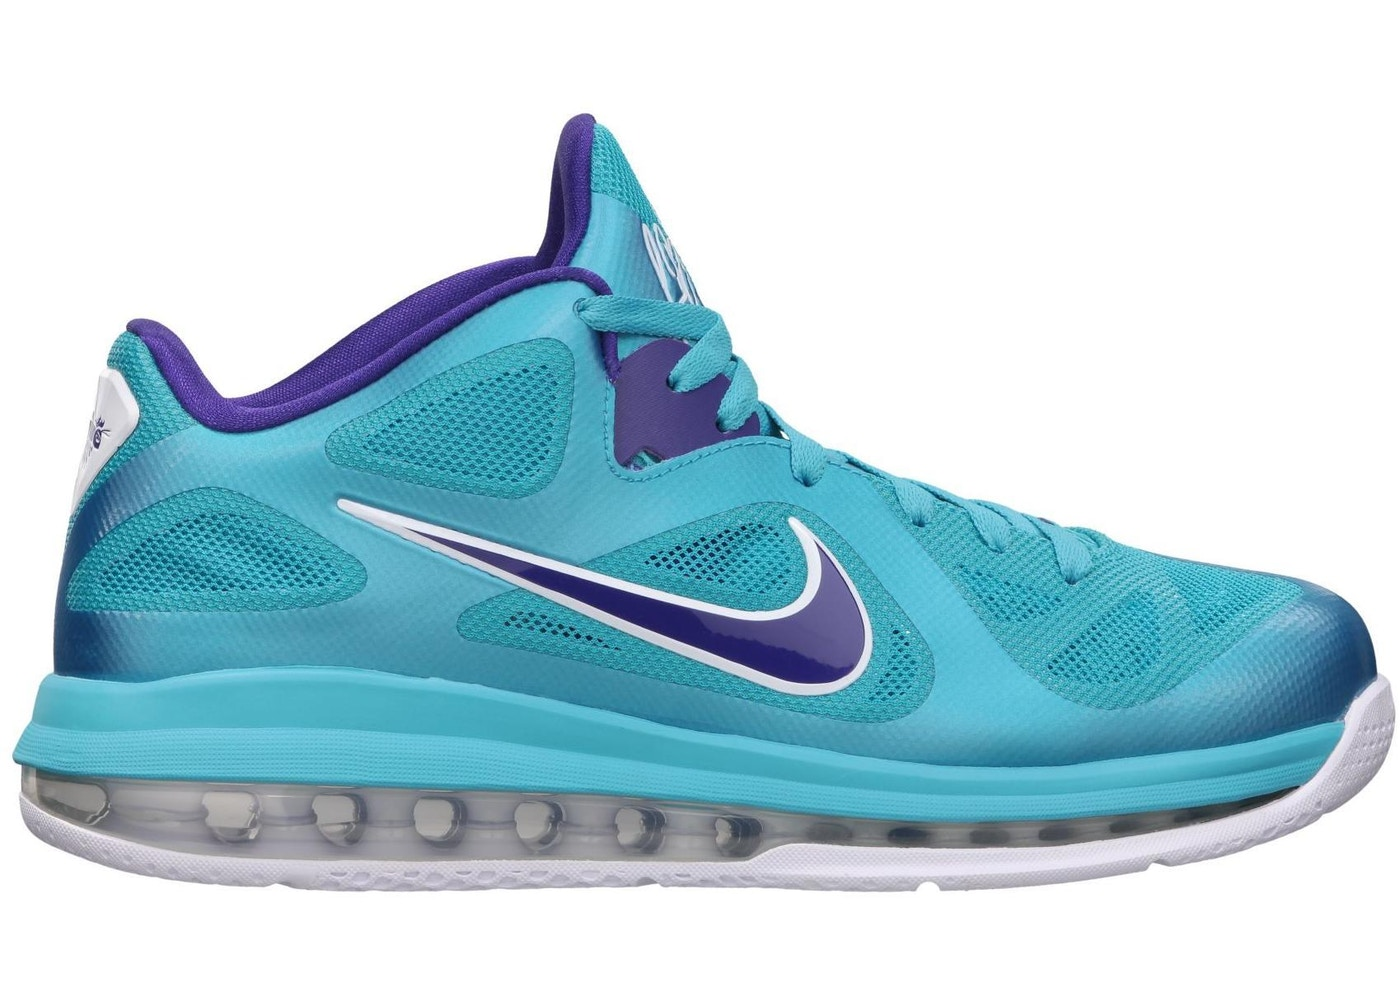 dd4391313b8b LeBron 9 Low Summit Lake Hornets - 510811-400